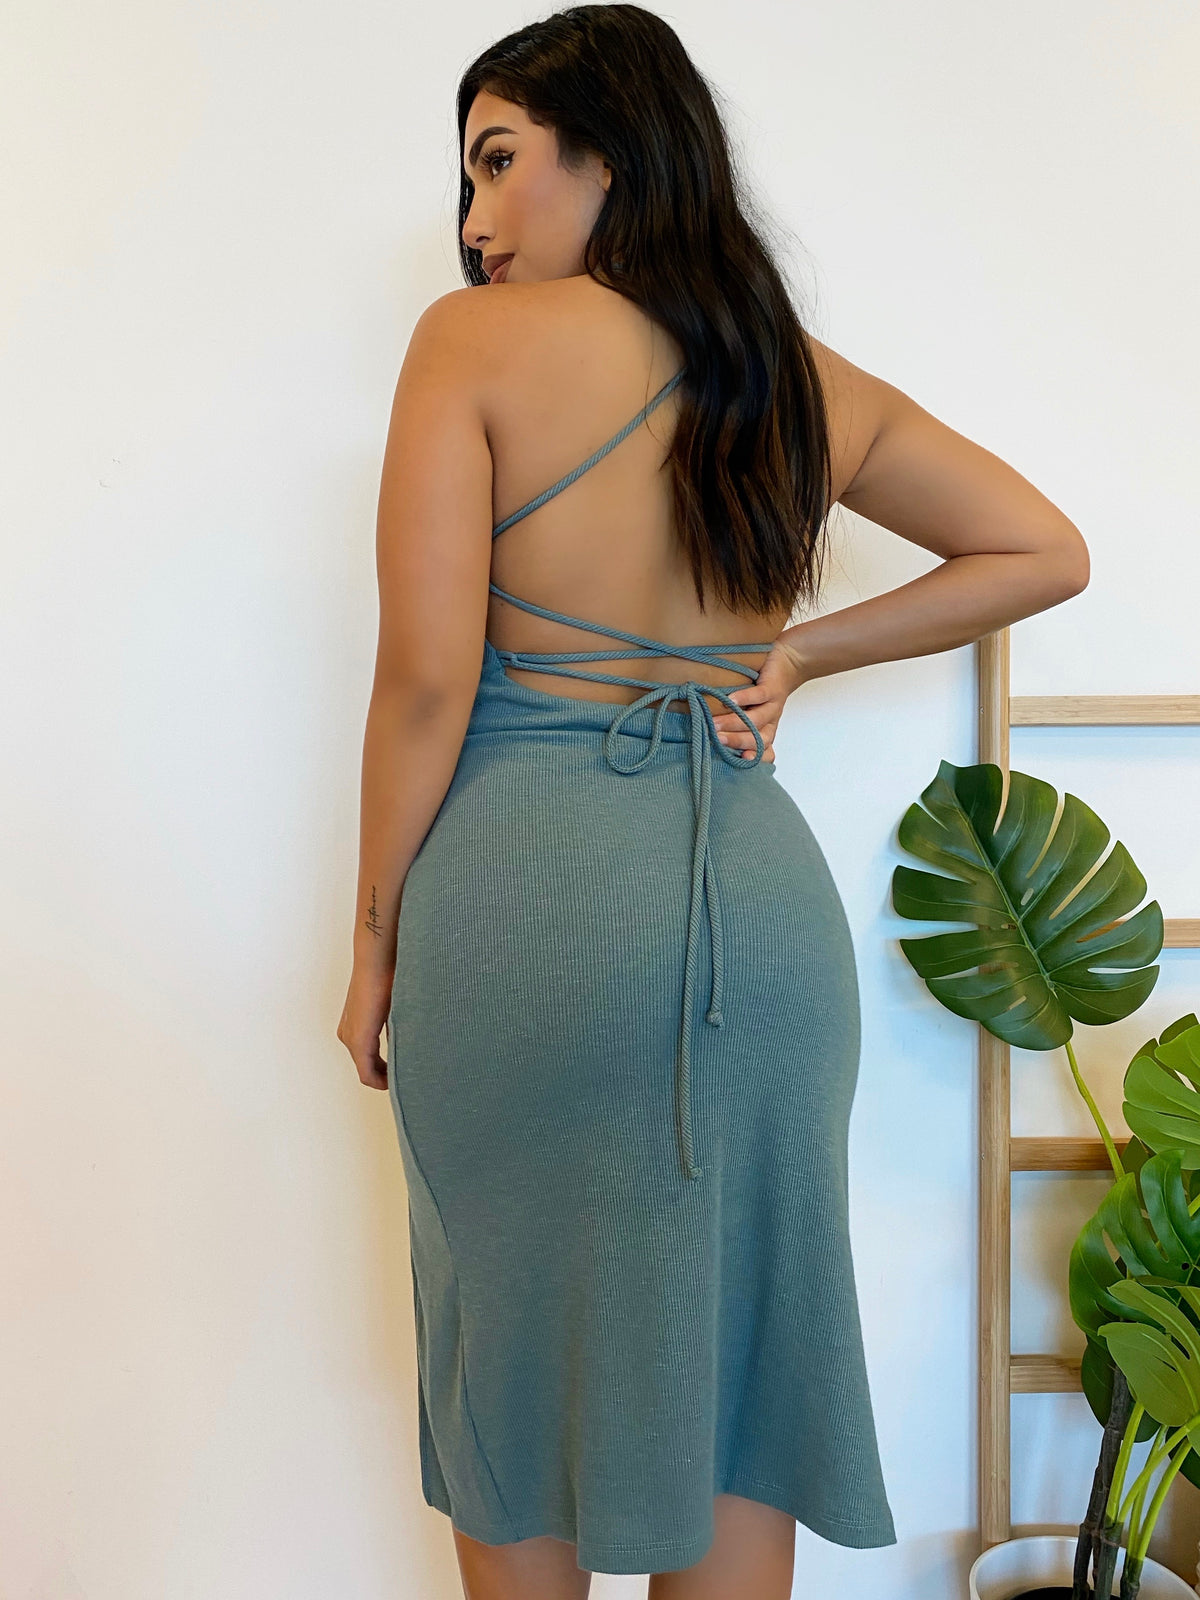 sage ribbed dress, midi dress, spaghetti strap, criss-cross back,  high slit